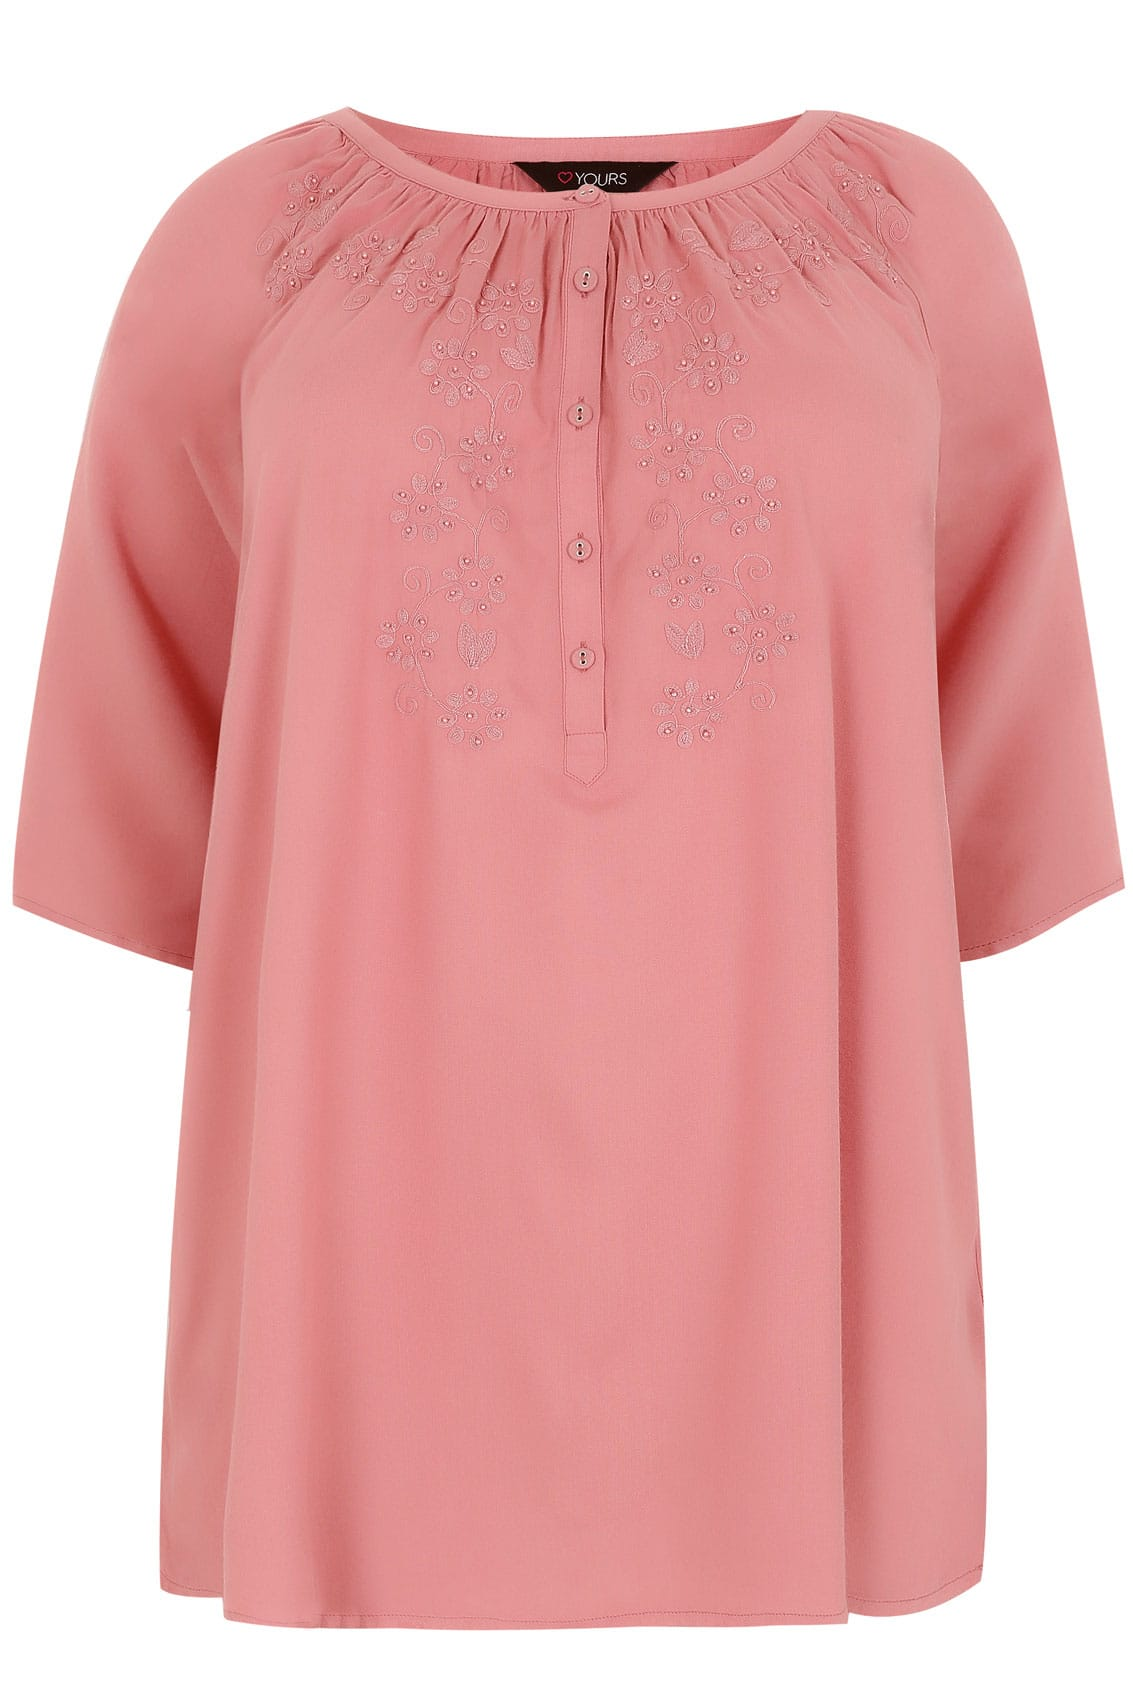 Blouse boh me rose sombre avec d tails broderie taille 44 for Booking terms and conditions template